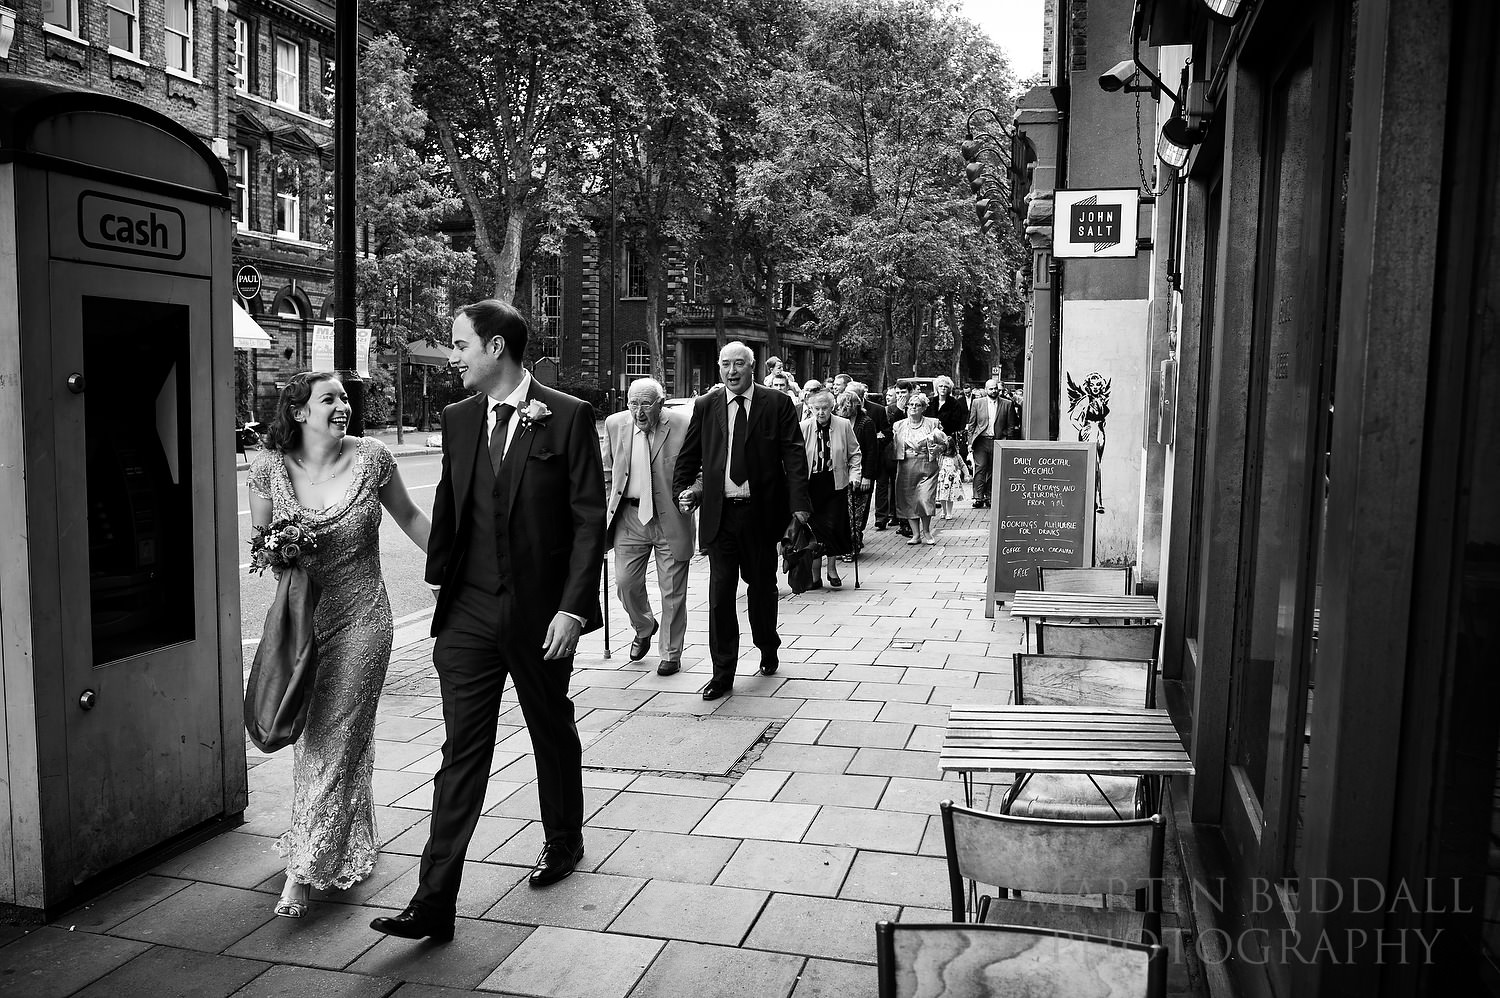 Leading the guest up Upper Street to the wedding mneal